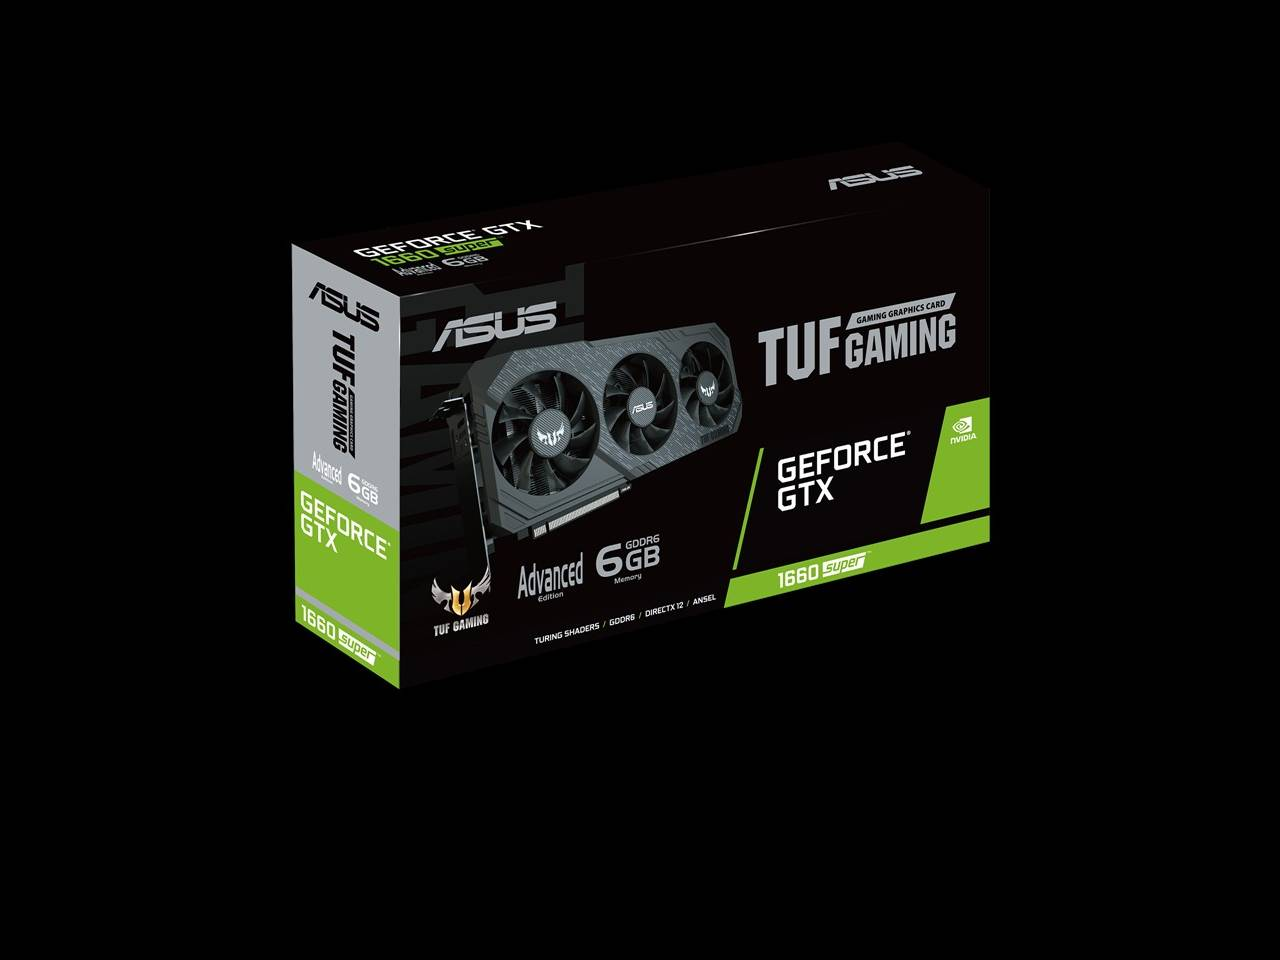 ASUS TUF Gaming X3 GeForce GTX 1660 SUPER Advanced edition 6GB GDDR6 Graphics Card